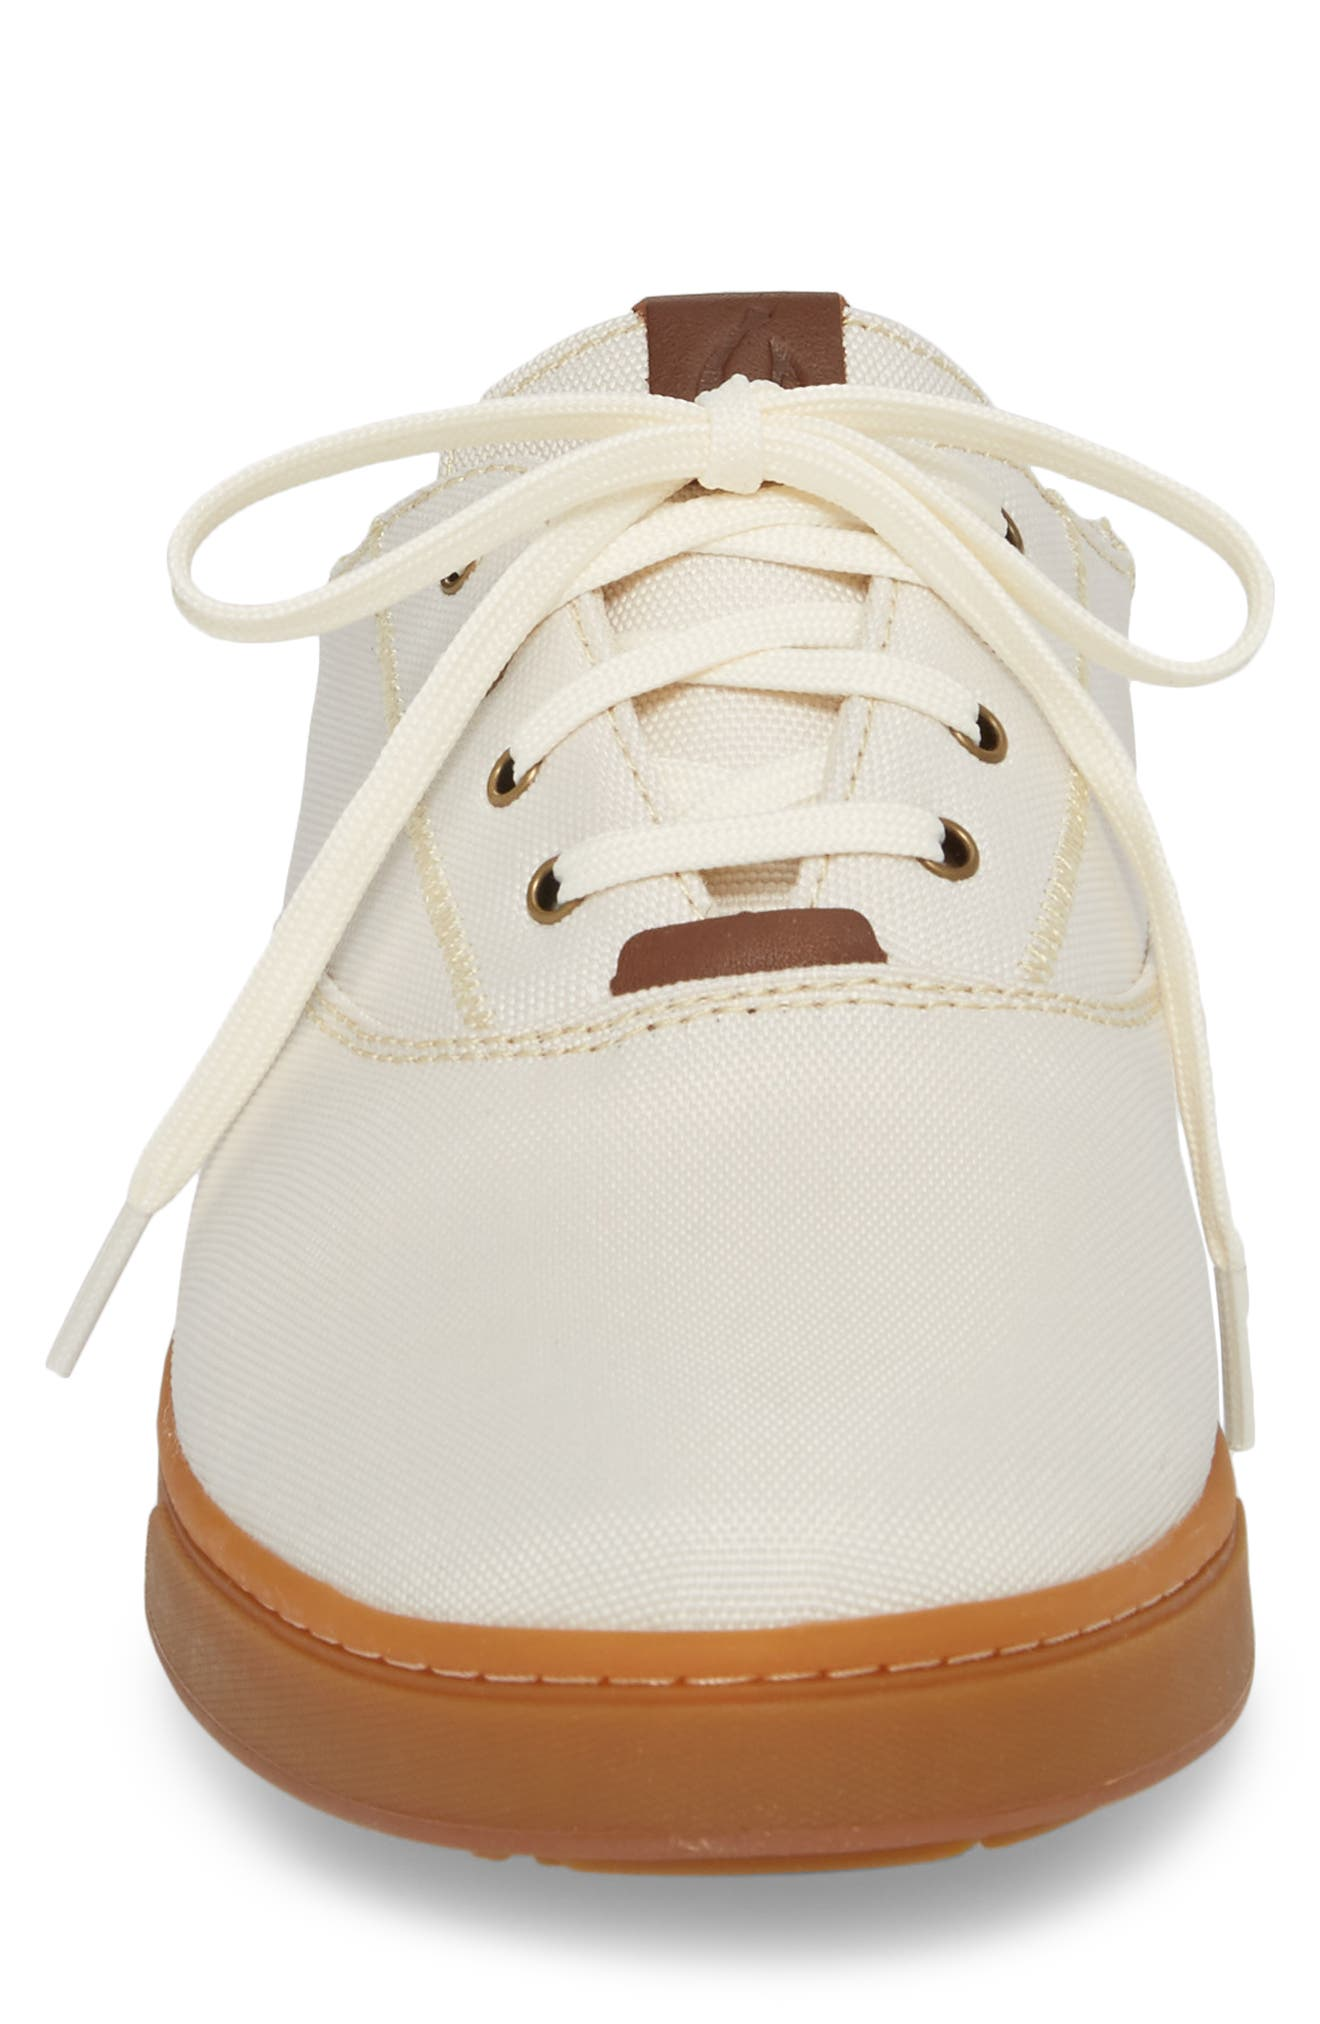 Kahu Collapsible Lace-Up Sneaker,                             Alternate thumbnail 5, color,                             OFF WHITE/ TOFFEE